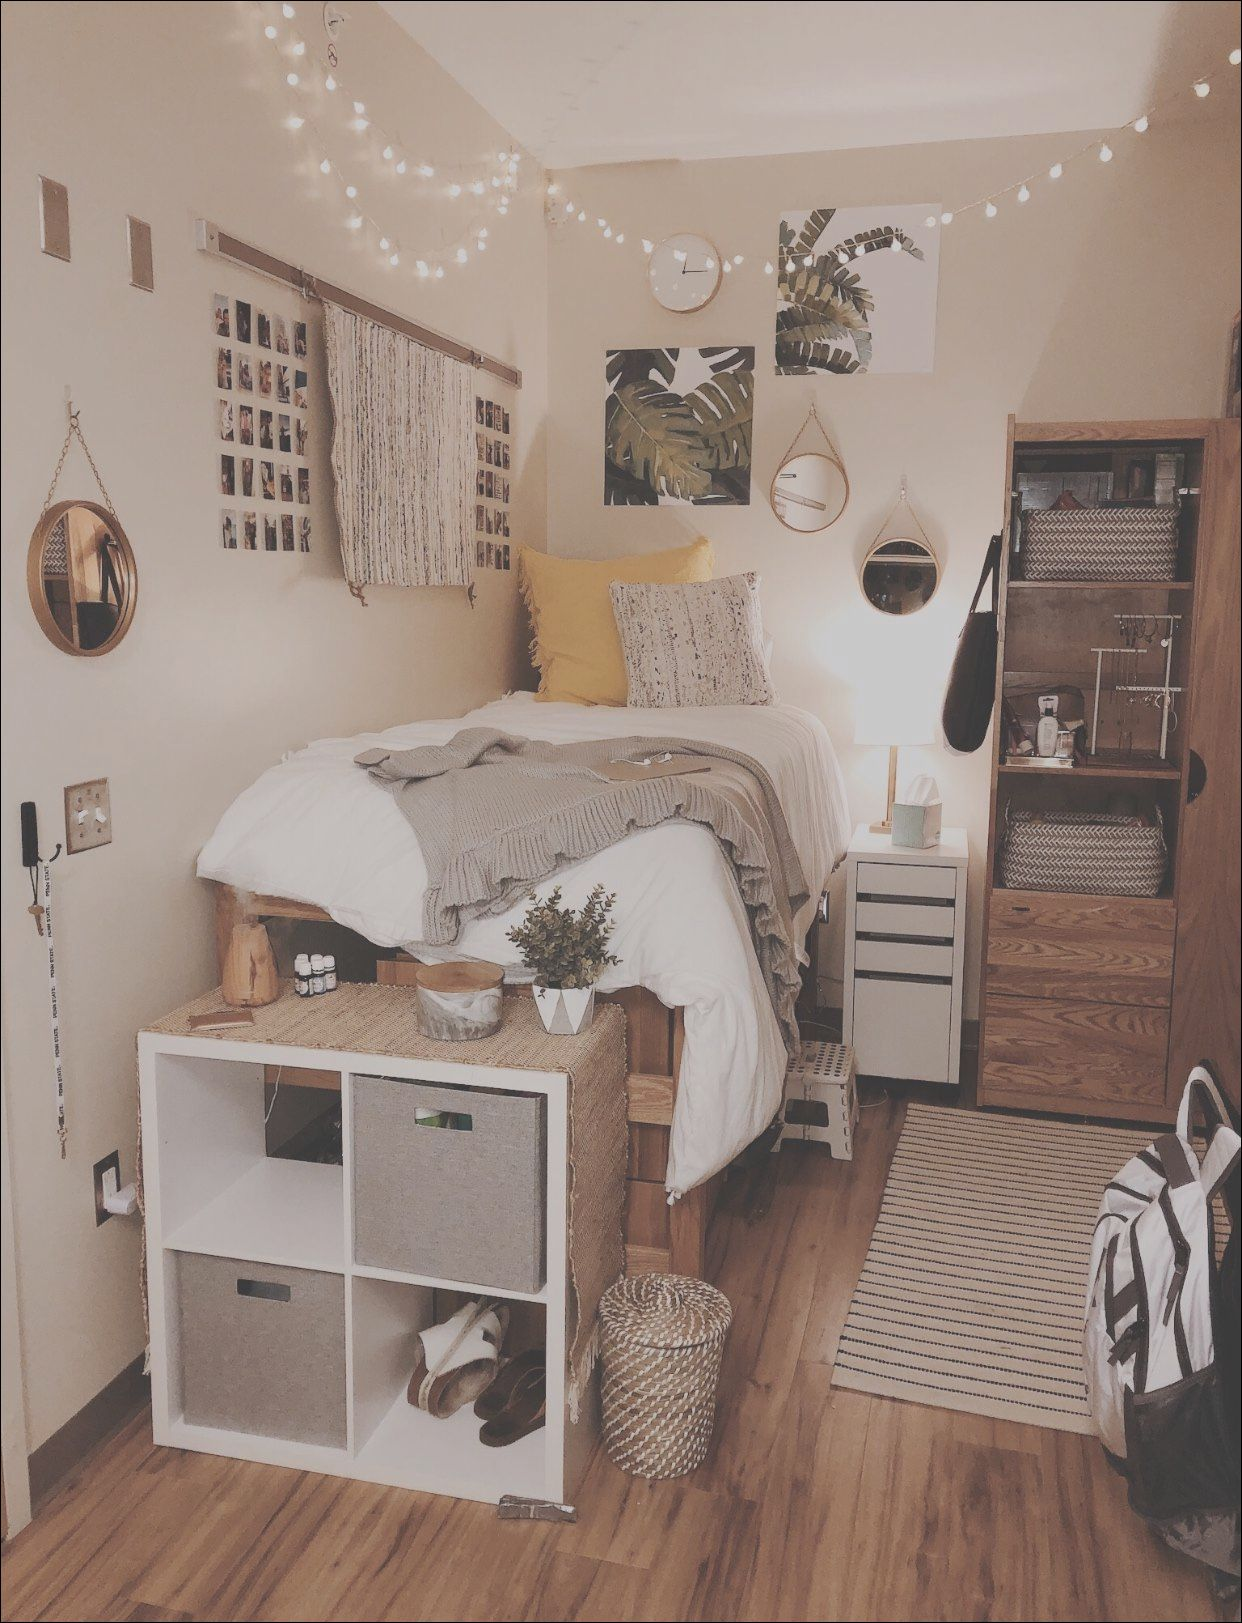 5 Excellent Small Room Design Idea Photos In 2020 College Dorm Room Decor Dorm Room Designs Dorm Room Inspiration